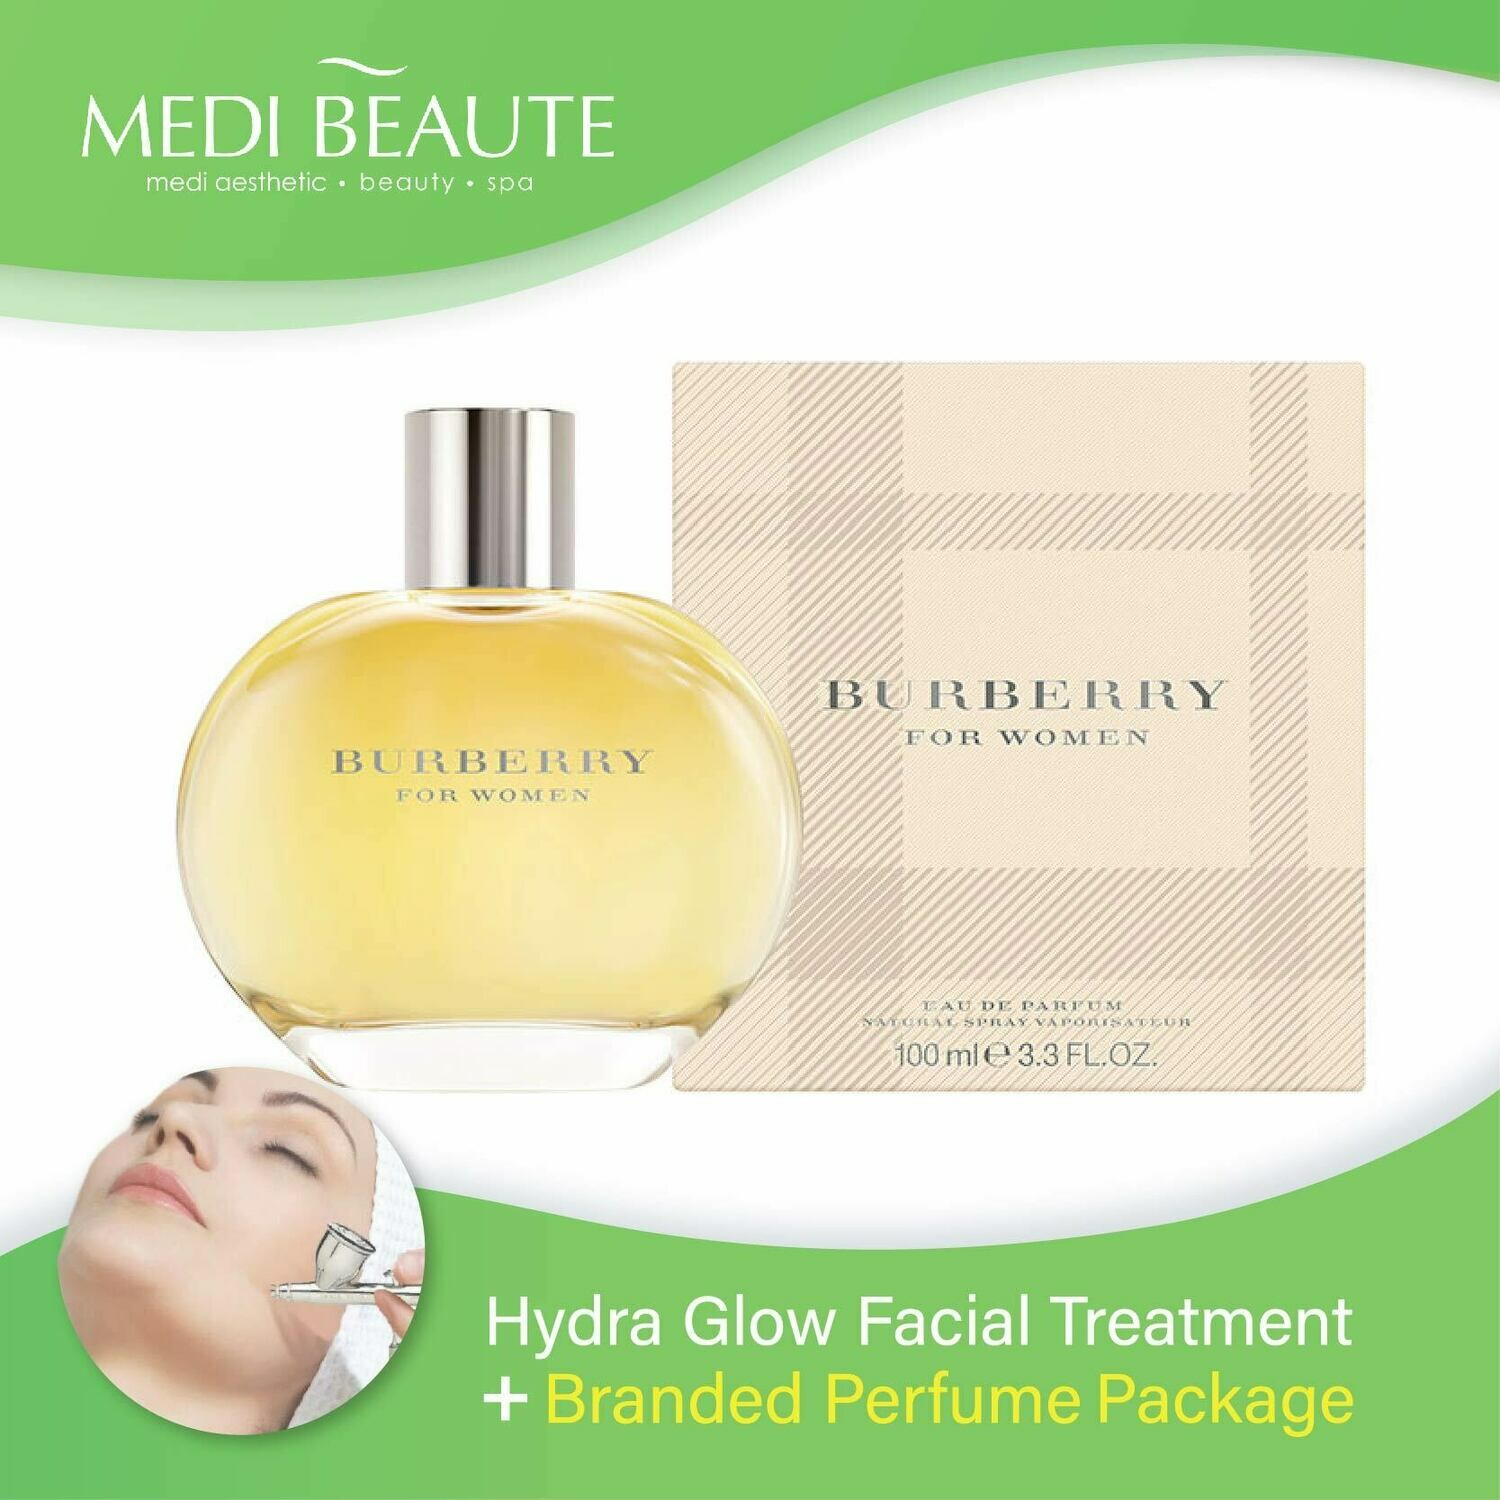 Medi Beaute Hydra Glow Facial Treatment + Branded Perfume ( Burberry Classic Lady EDP 100ml) Package